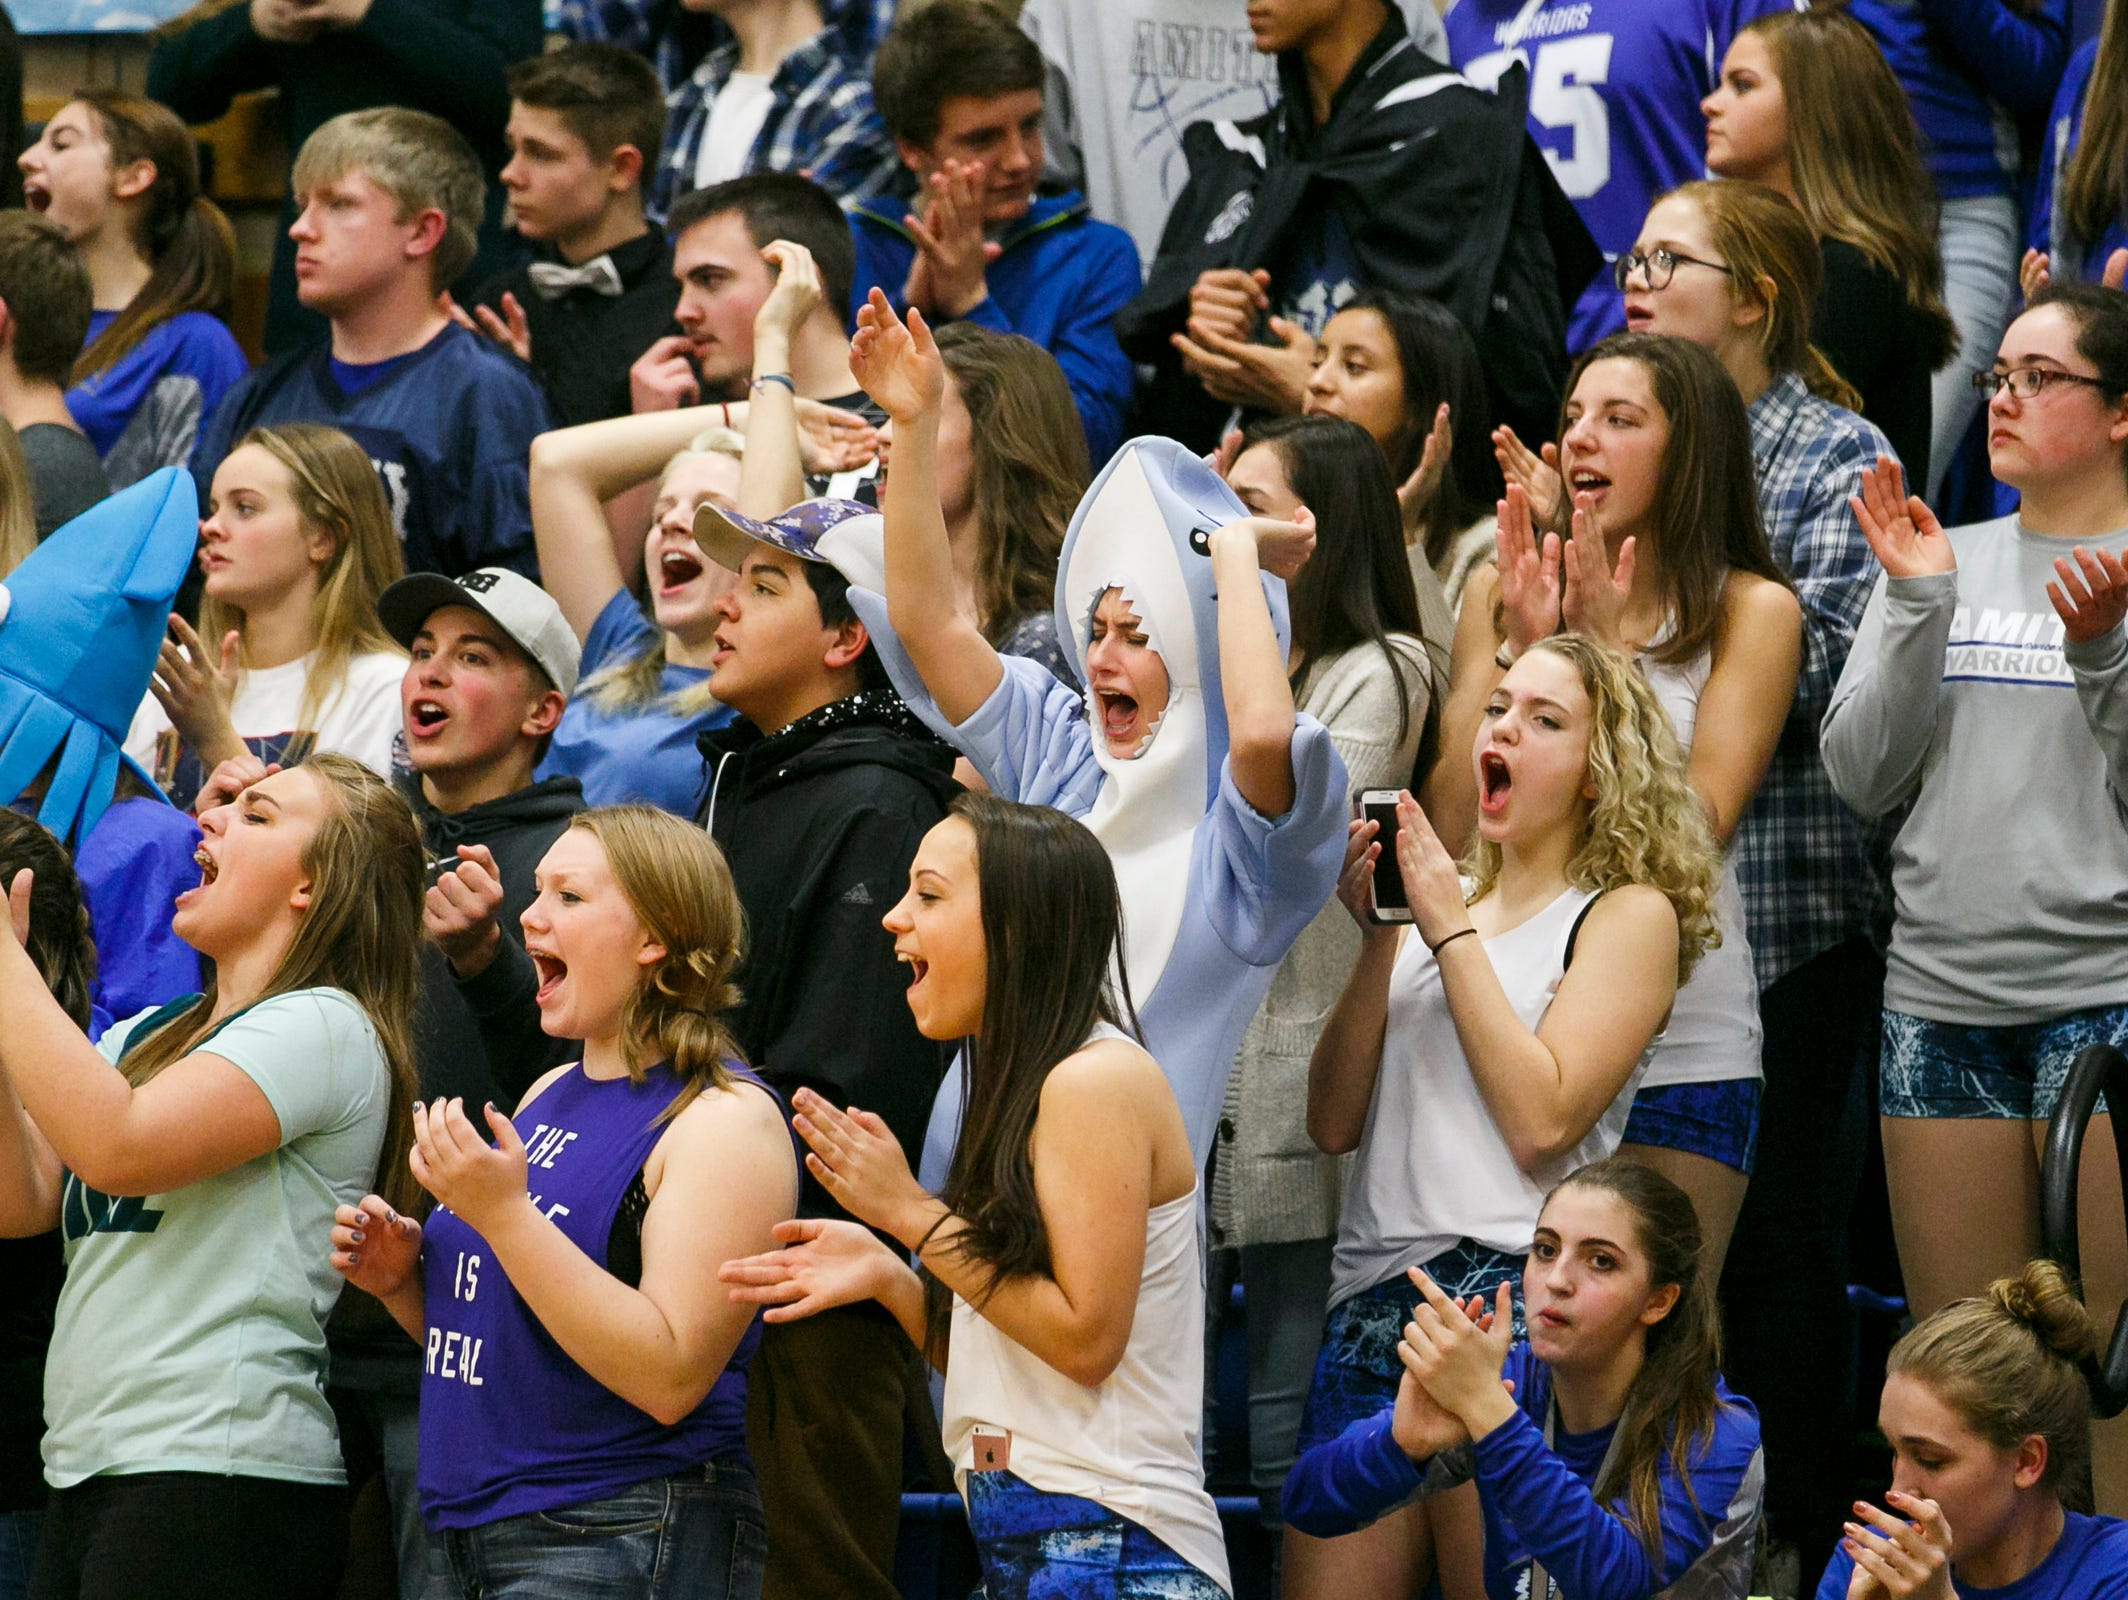 Amity students and fans cheer as they score a basket against Dayton in the first quarter of a West Valley League game on Monday, Jan. 9, 2017, at Amity High School. Dayton defeated long-time rival Amity 92-67.